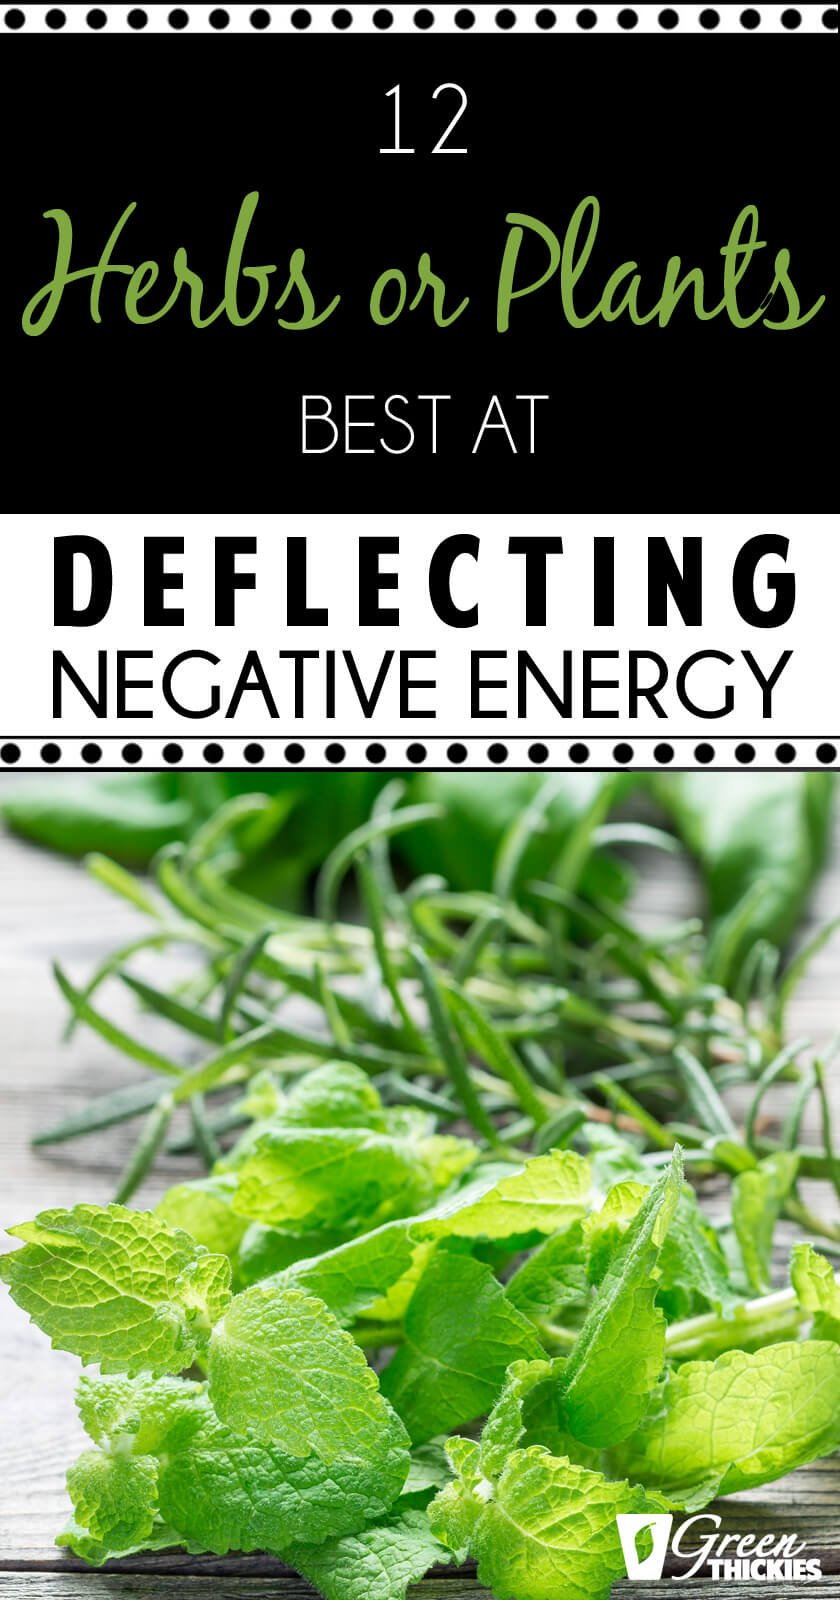 There are specific herbs that have been used for a very long time, that have the impact of deflecting and transforming negative energies. This is largely the basis of many therapeutic essential oils. Here are 12 excellent herbs at deflecting negative energy